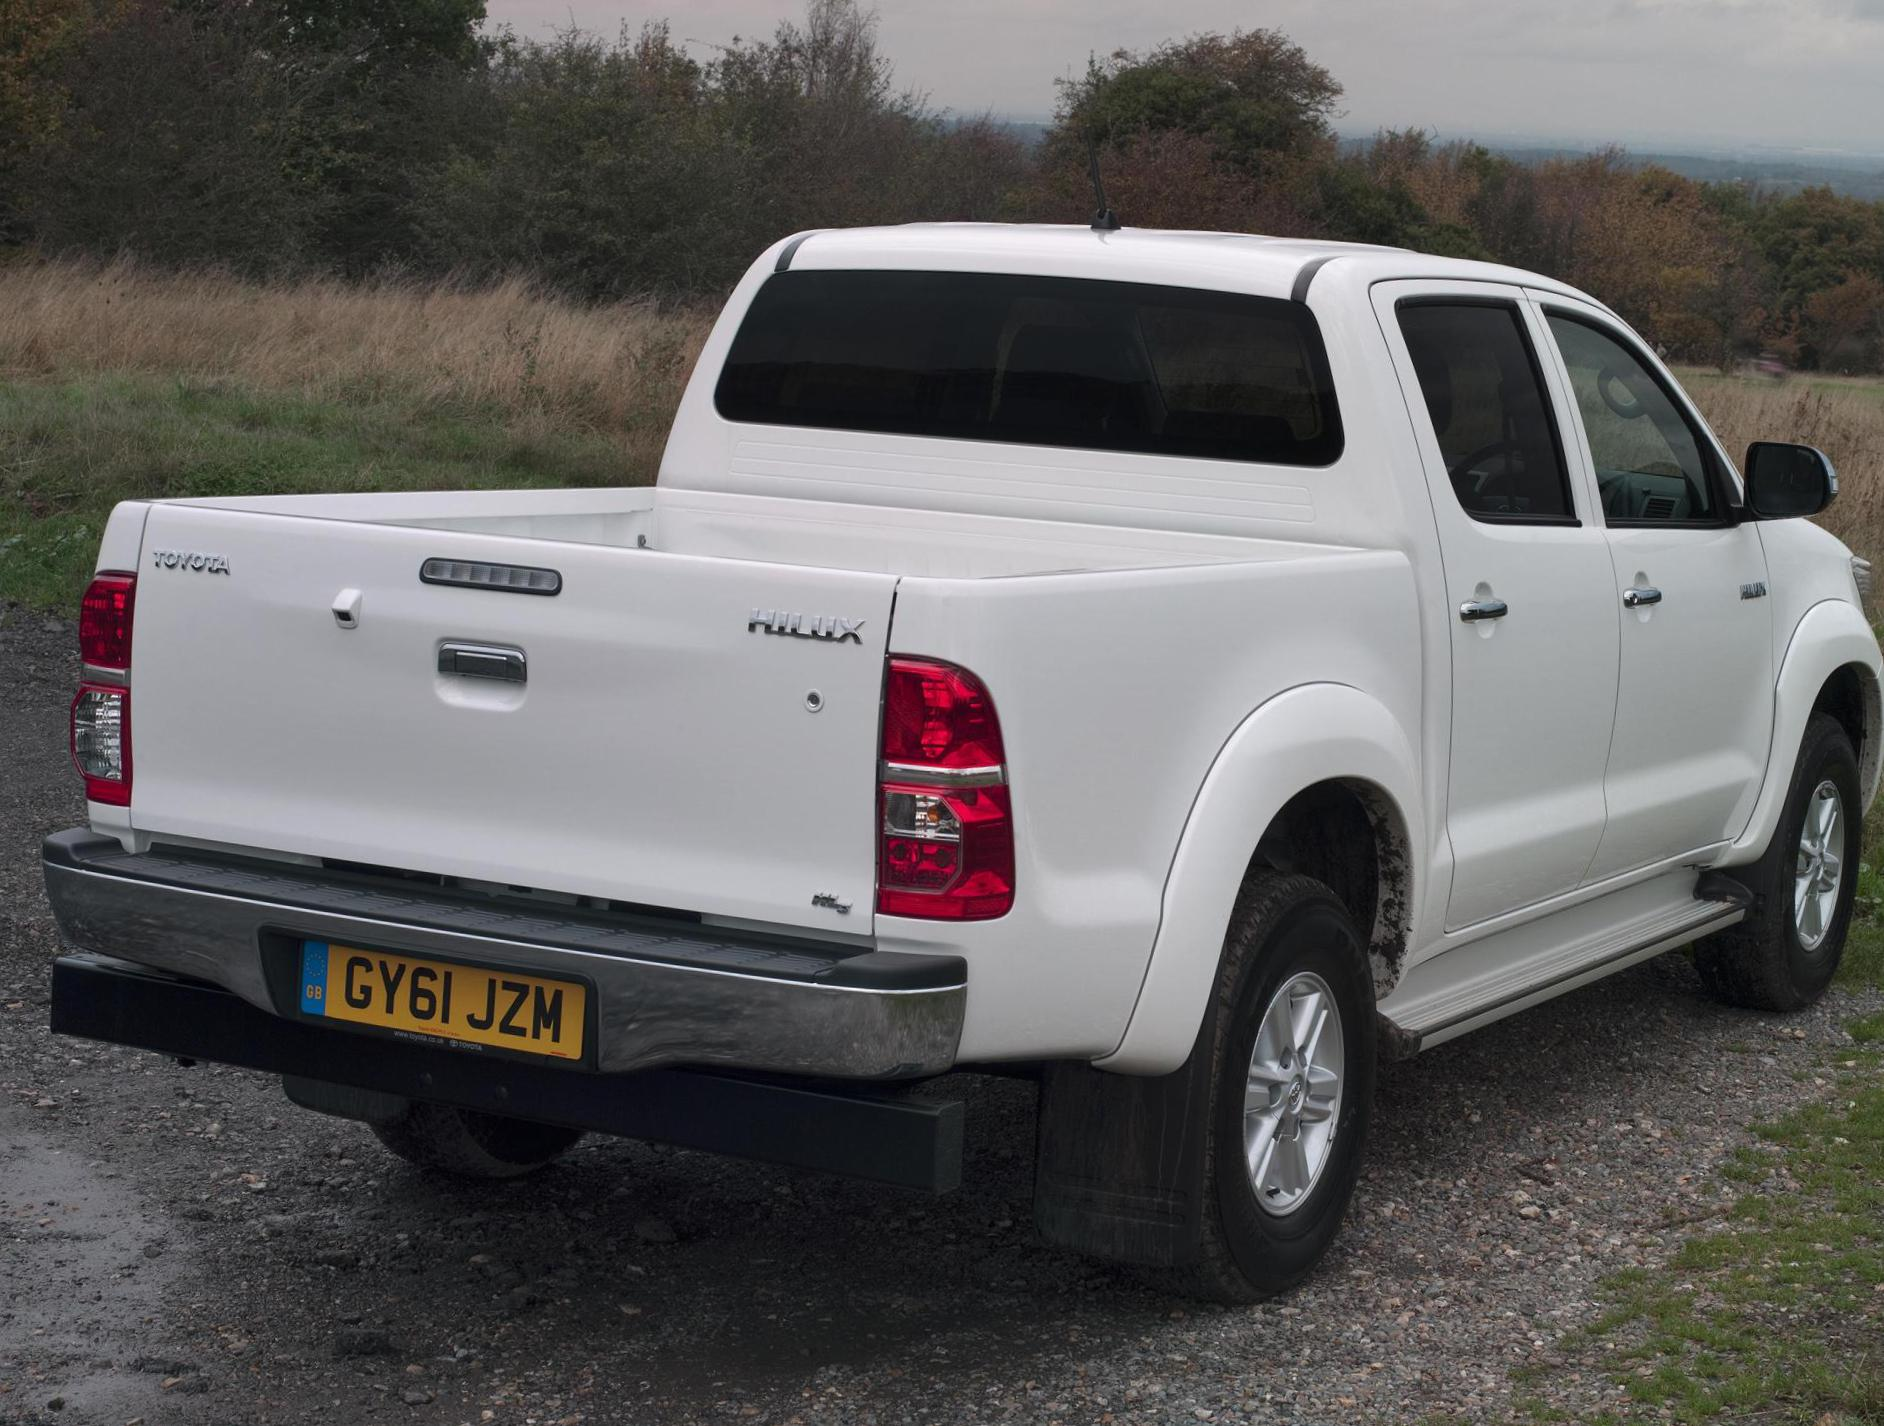 Hilux Double Cab Toyota model 2009